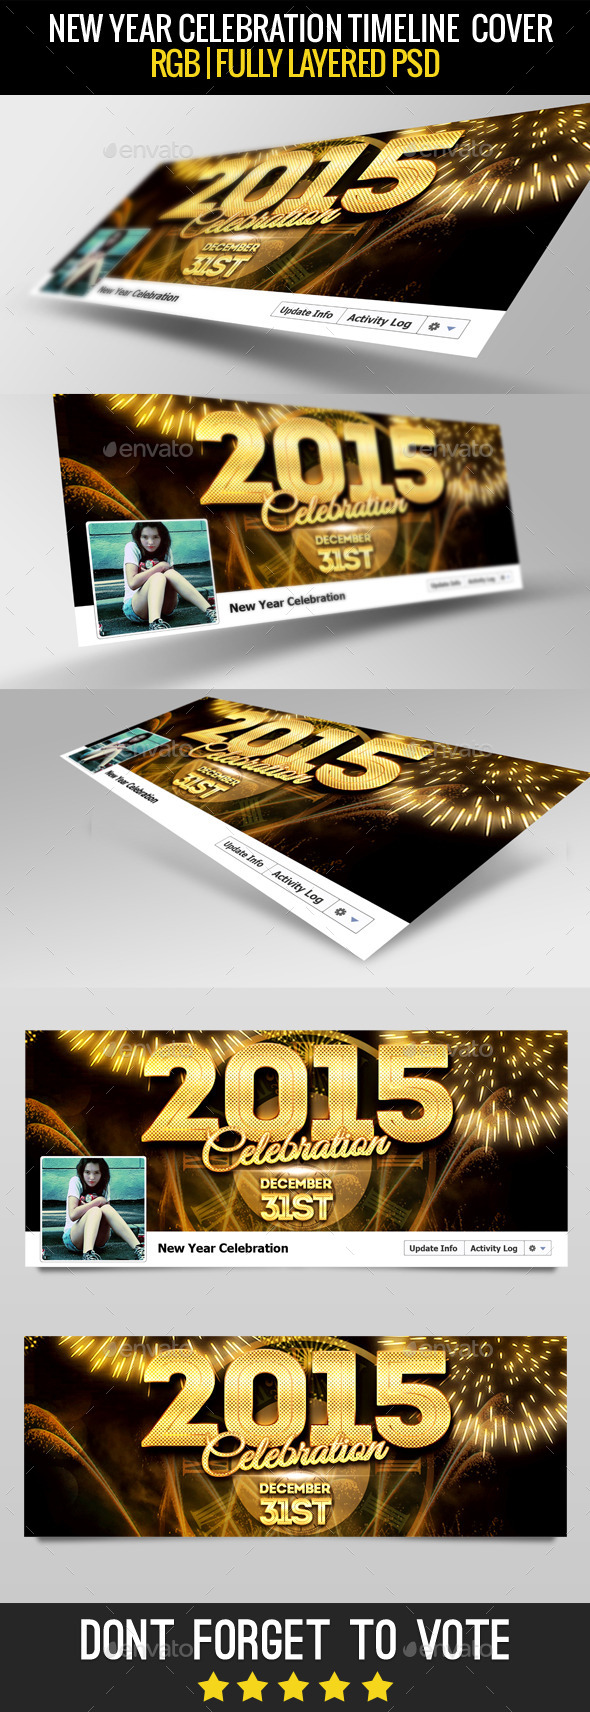 GraphicRiver New Year Facebook Cover 2015 9860881